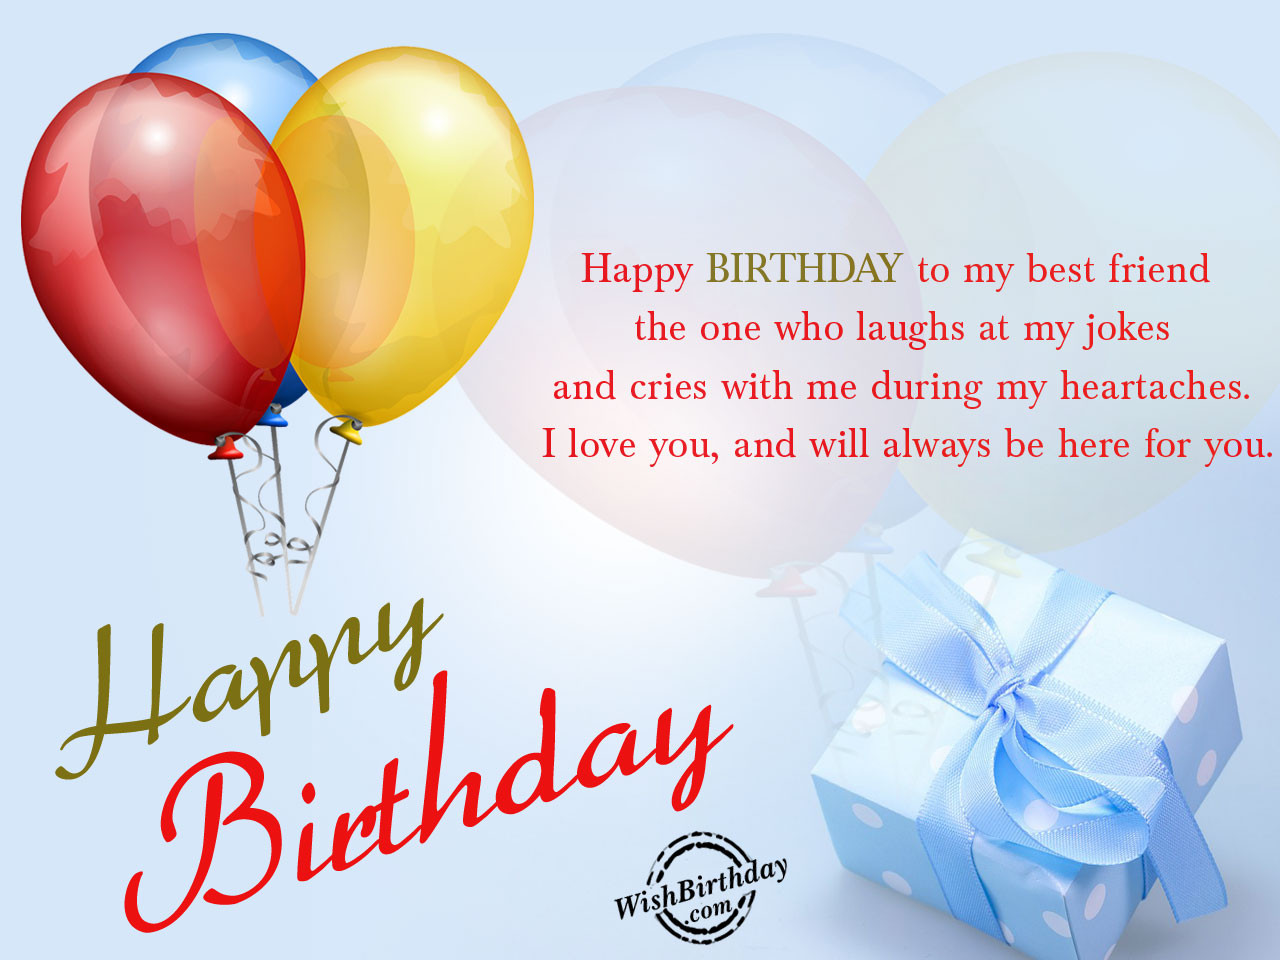 Best ideas about Happy Birthday Wishes For Best Friend . Save or Pin Birthday Wishes For Best Friend Birthday Now.